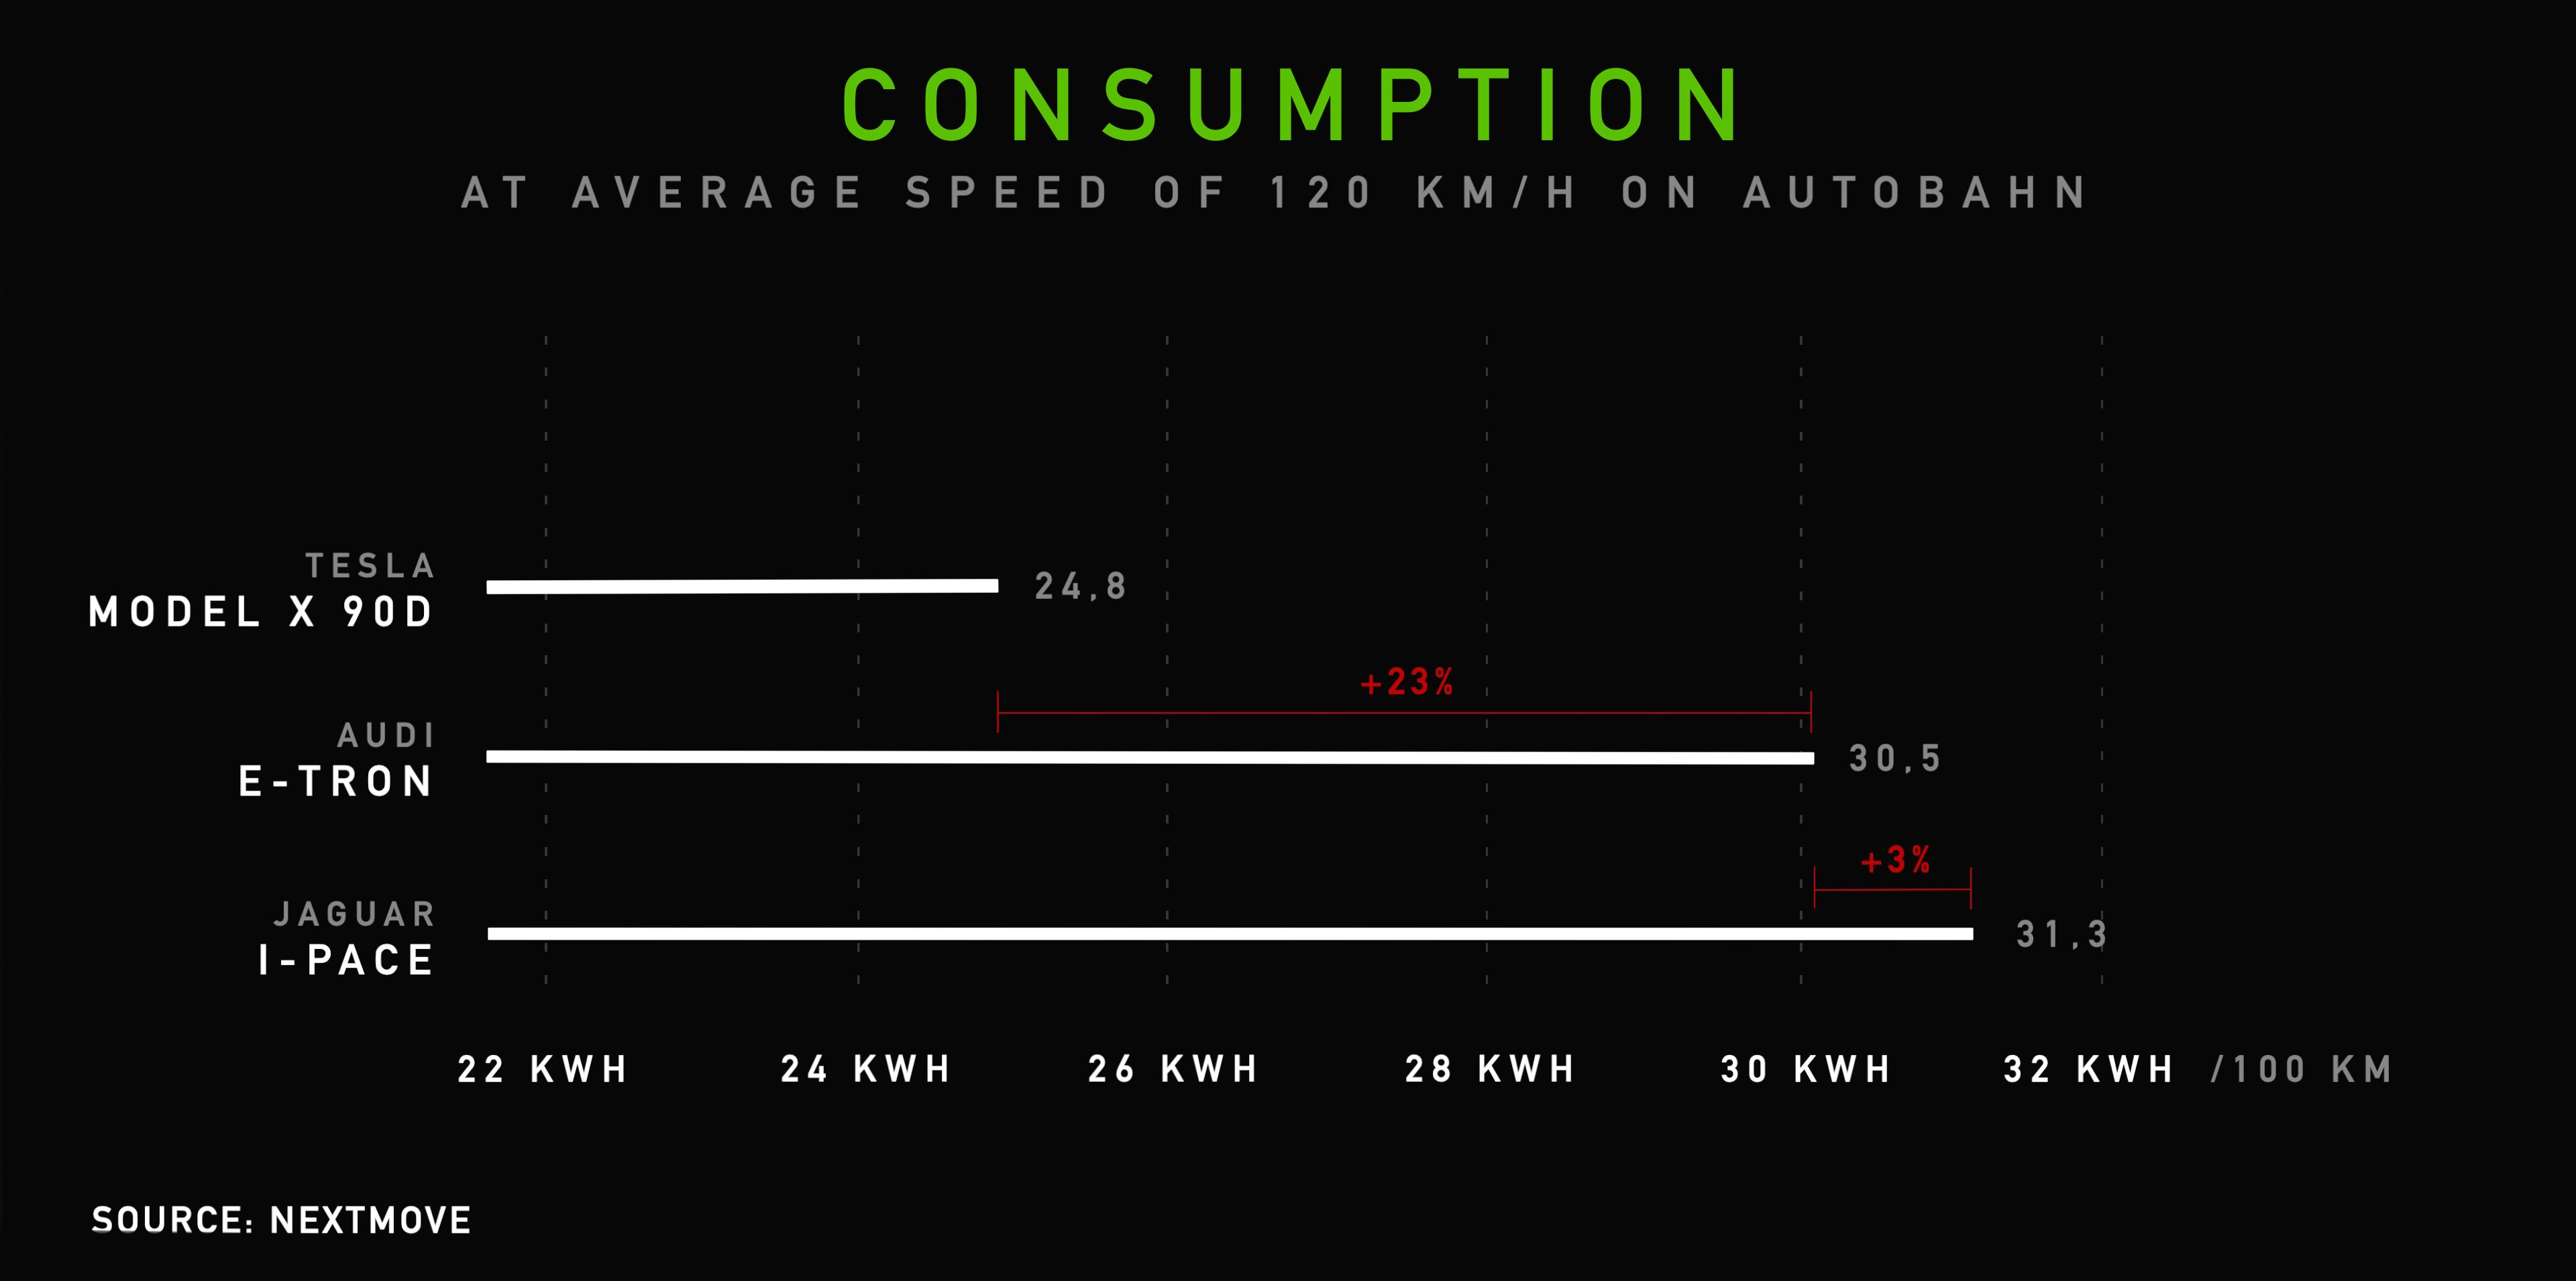 Tesla S Incredible Efficiency Lead Is Becoming Clear With Range Test